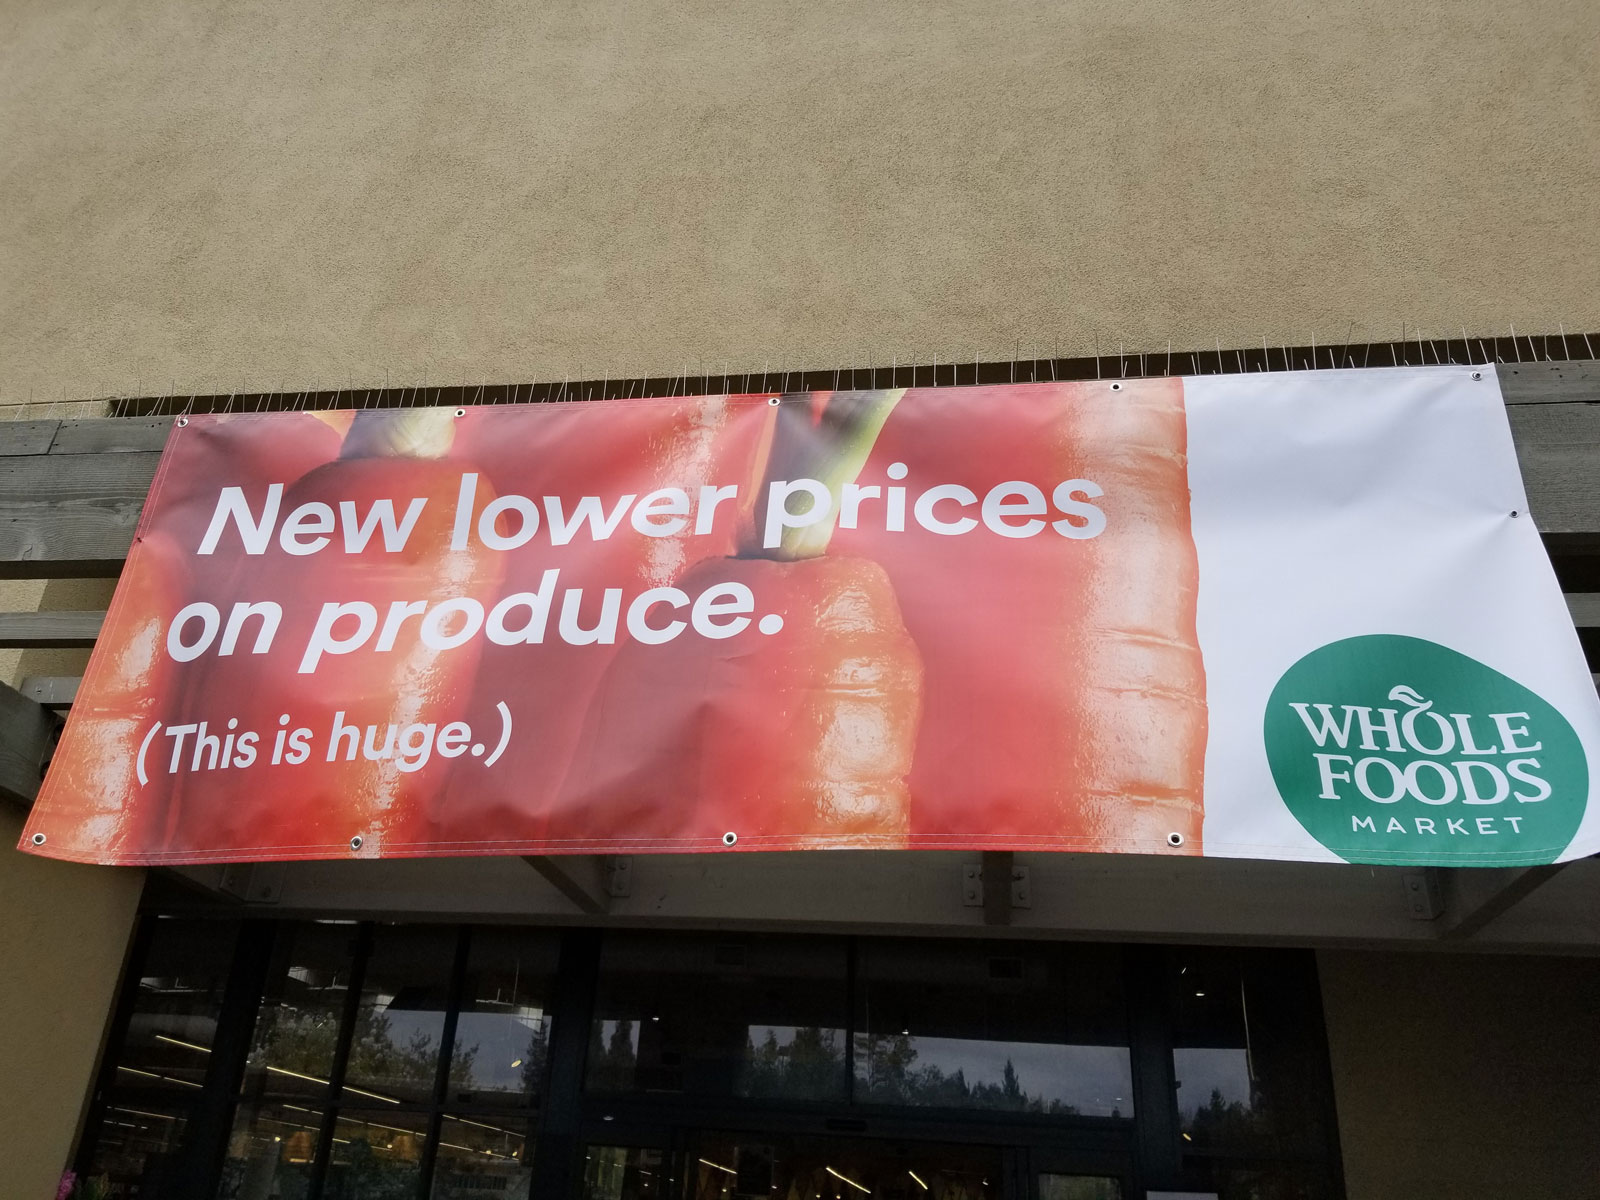 Whole Foods Is Still America's Priciest Grocer, According to Bank of America